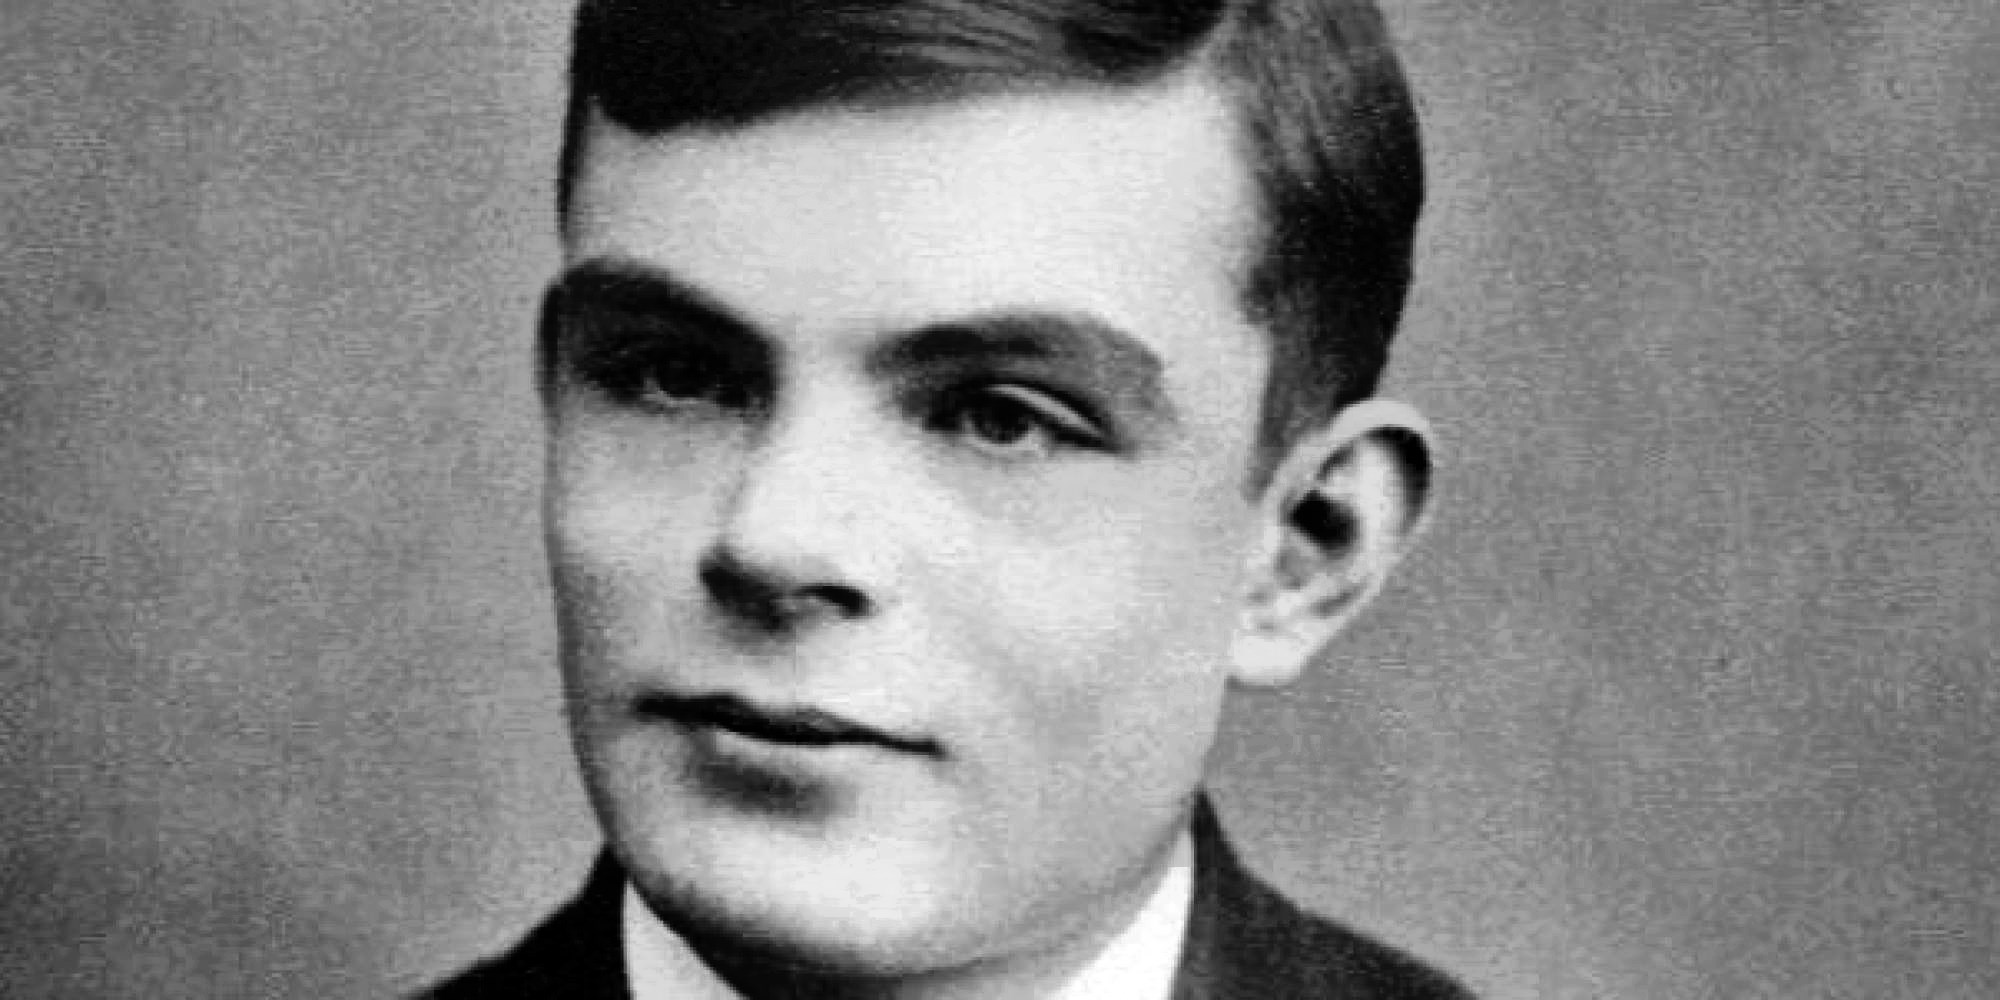 biography of alan turing Biography of turing  alan mathison turing frs obe (born 23 june 1912 at 2 warrington crescent, london w9, died 7 june 1954 at his home in wilmslow, .